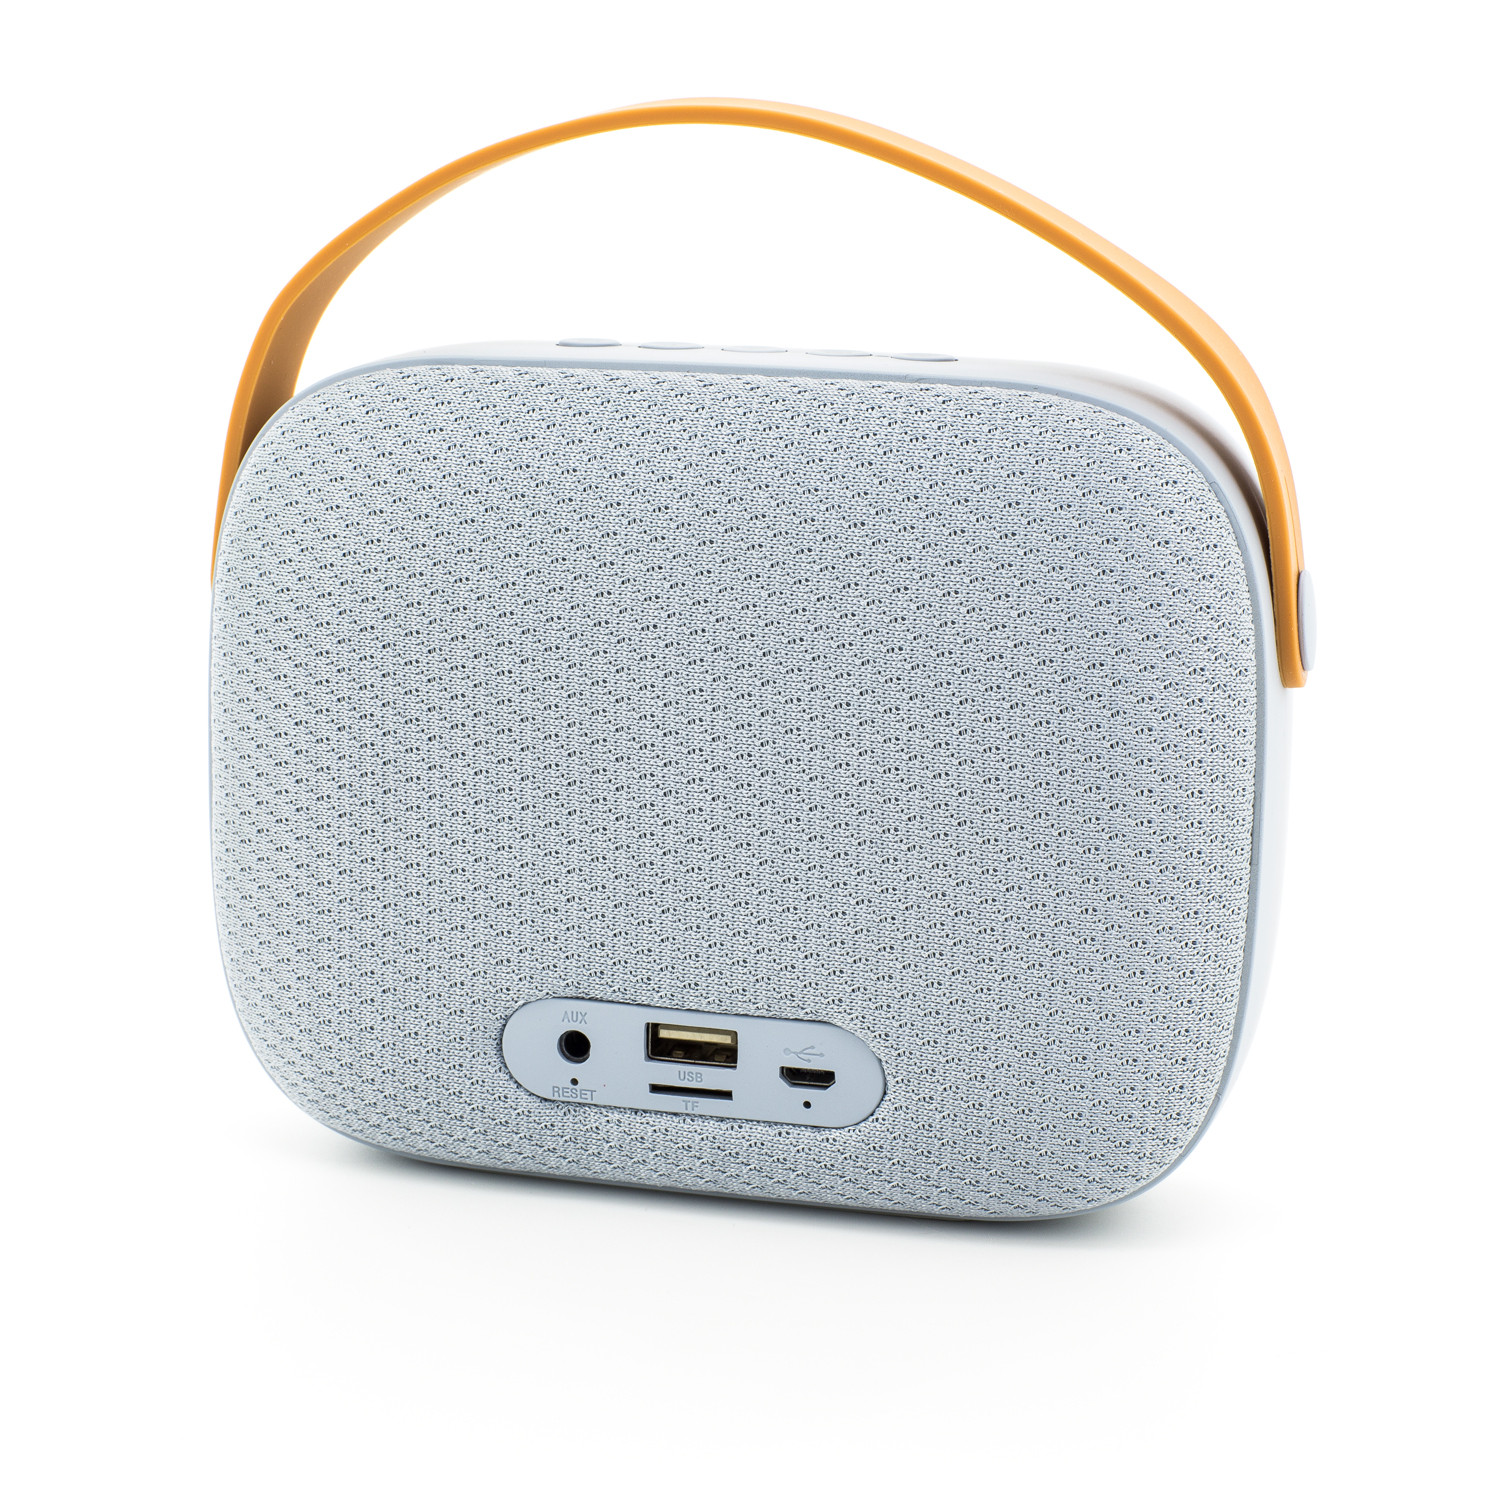 Bluetooth Boxen Für Handy Tragbarer Lautsprecher Bluetooth Speaker Usb Mini Box Wireless Für Unterwegs